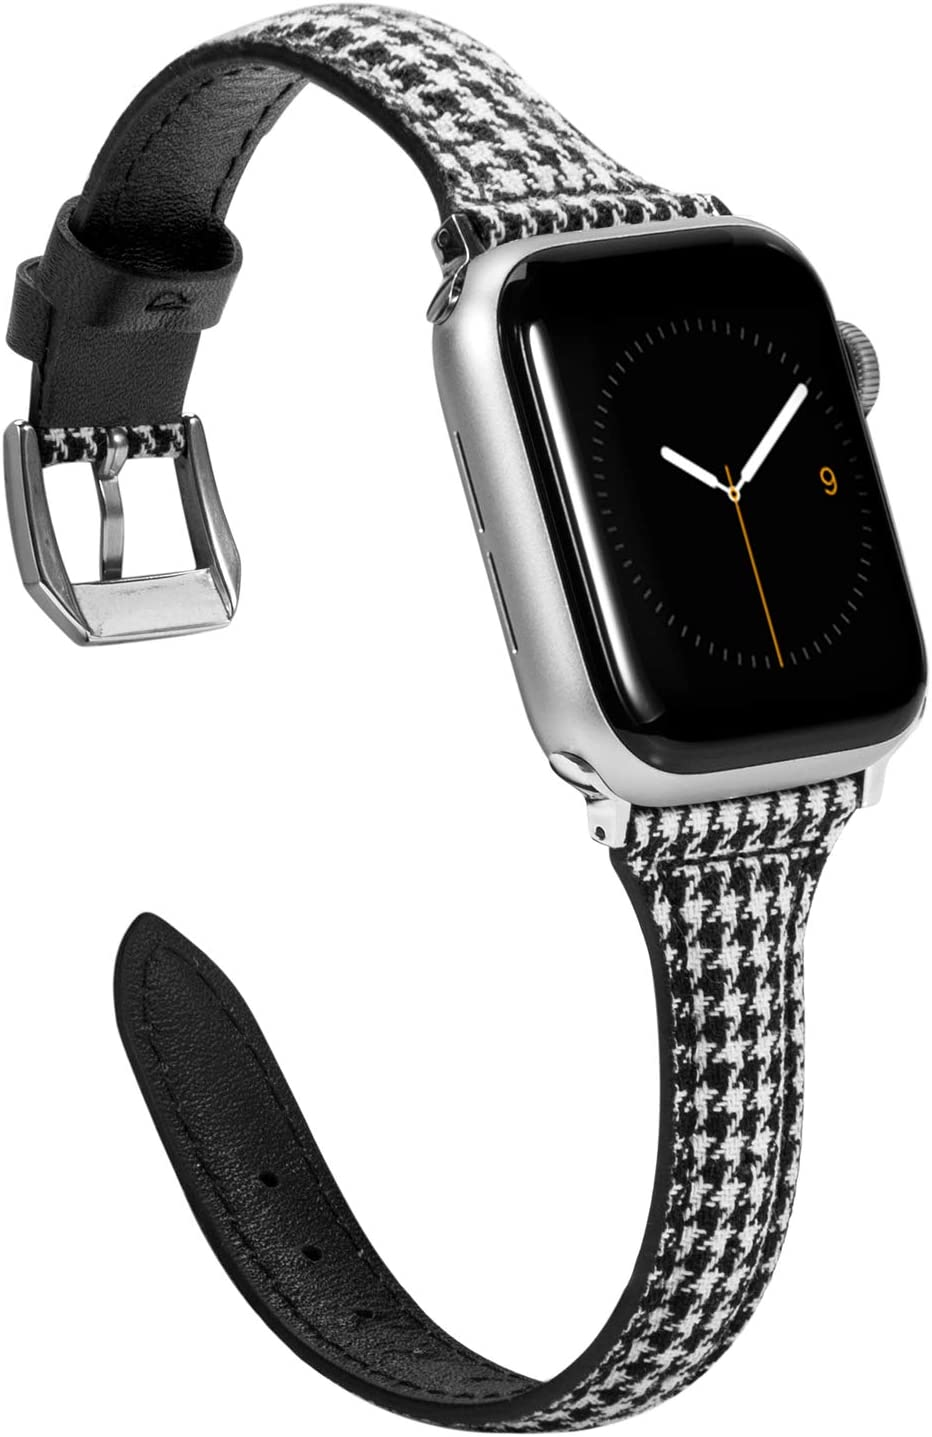 Wearlizer Slim Compatible with Apple Watch Bands 38mm 40mm for iWatch SE Strap Womens Mens Top Grain Leather with Canvas Grid Wristbands Thin Leisure Replacement(Silver Buckle) Series 6 5 4 3 2 1